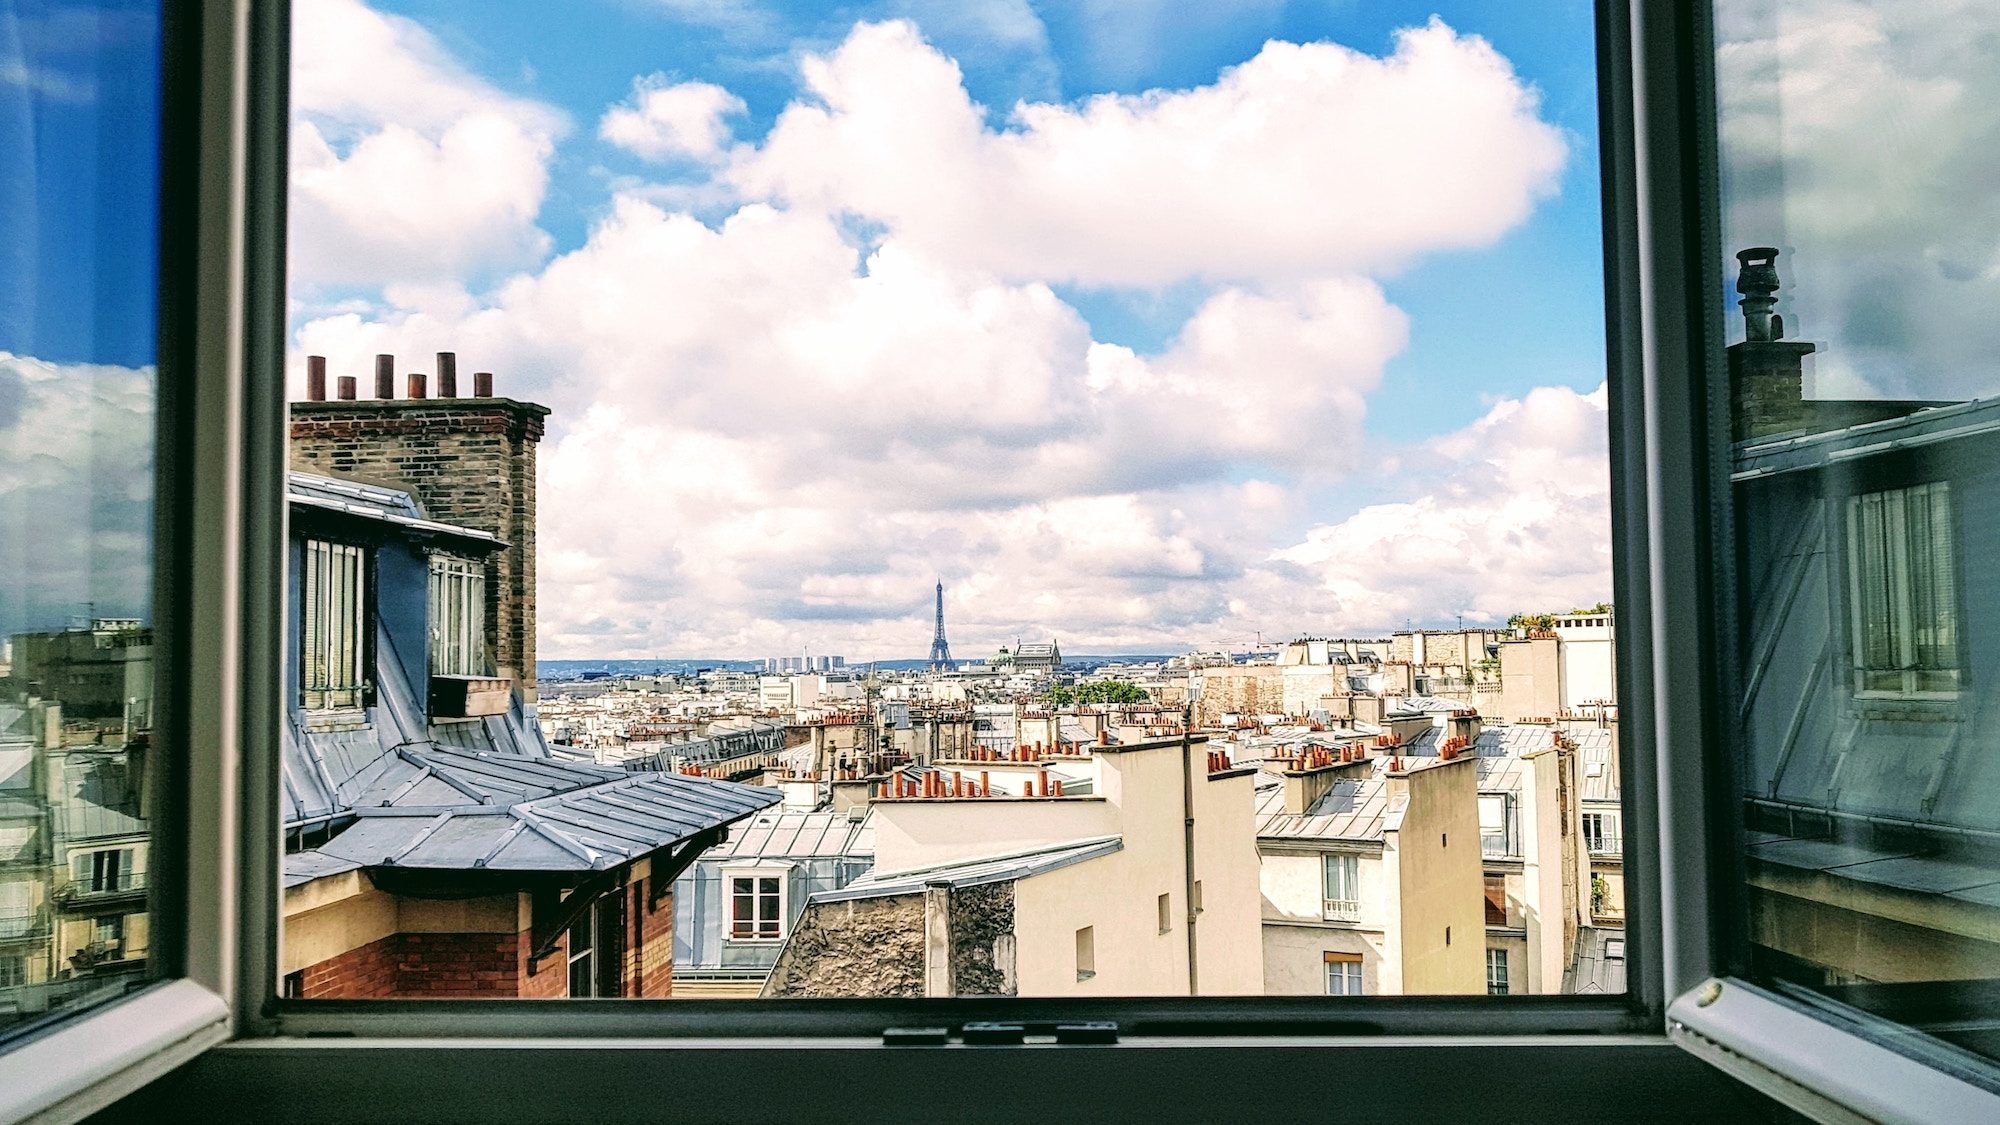 HiP Paris Blog explores seeing Paris like it's the first time